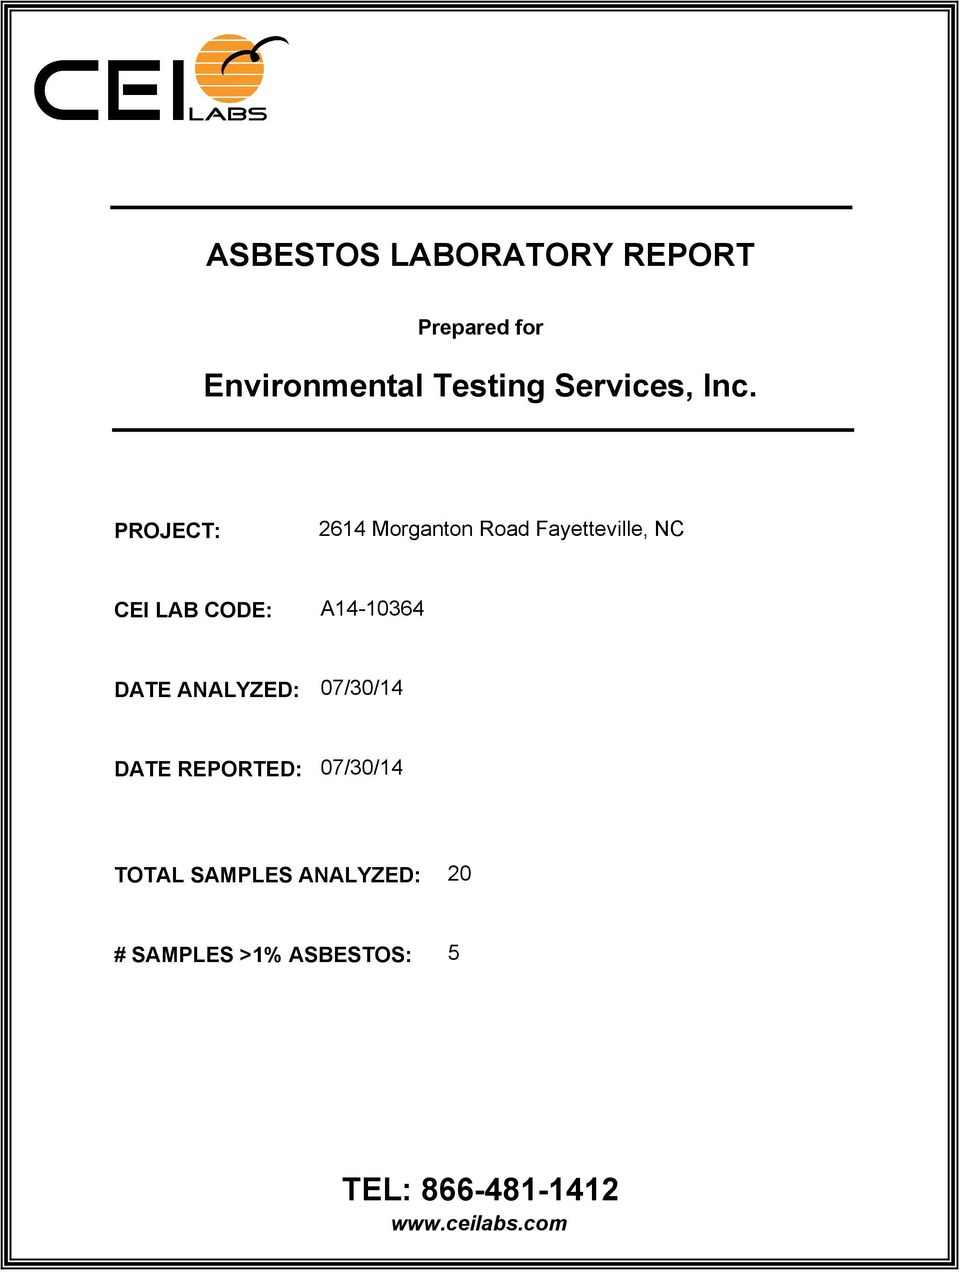 ANALYZED: 07/30/14 DATE REPORTED: 07/30/14 TOTAL SAMPLES